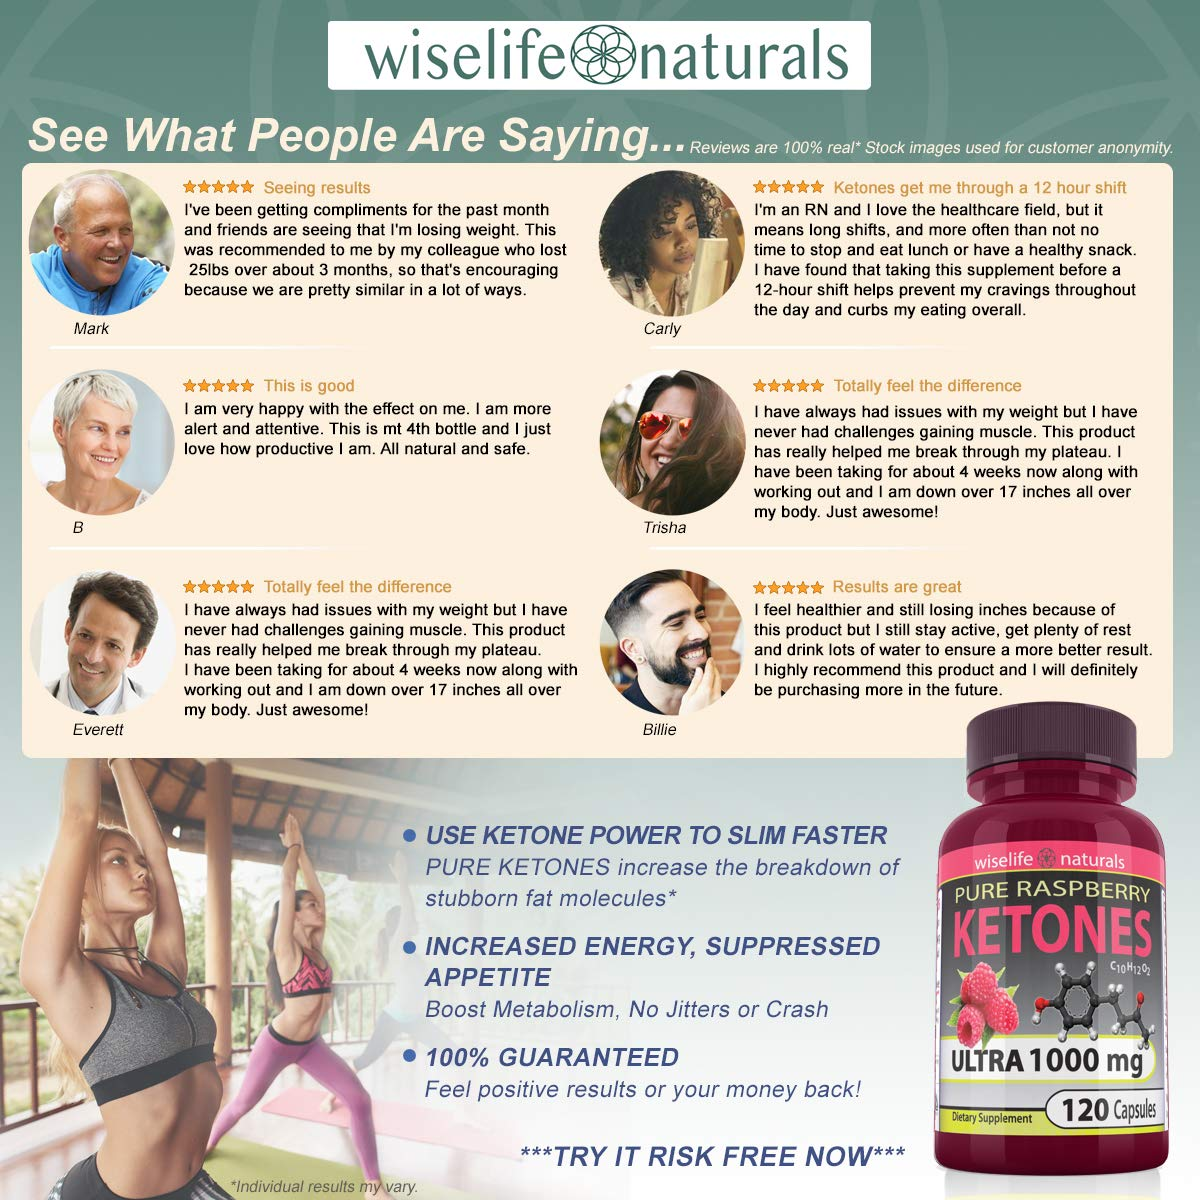 Best Fast Metabolism Slimming Pill - Pure Raspberry Ketones Fresh 1000mg Plus Max Burn, Lose Fat Quickly Proven Supports Rapid Ketogenic Diet Weight Loss, Works Naturally, Slim at Home No Side Effects by WiseLifeNaturals (Image #3)